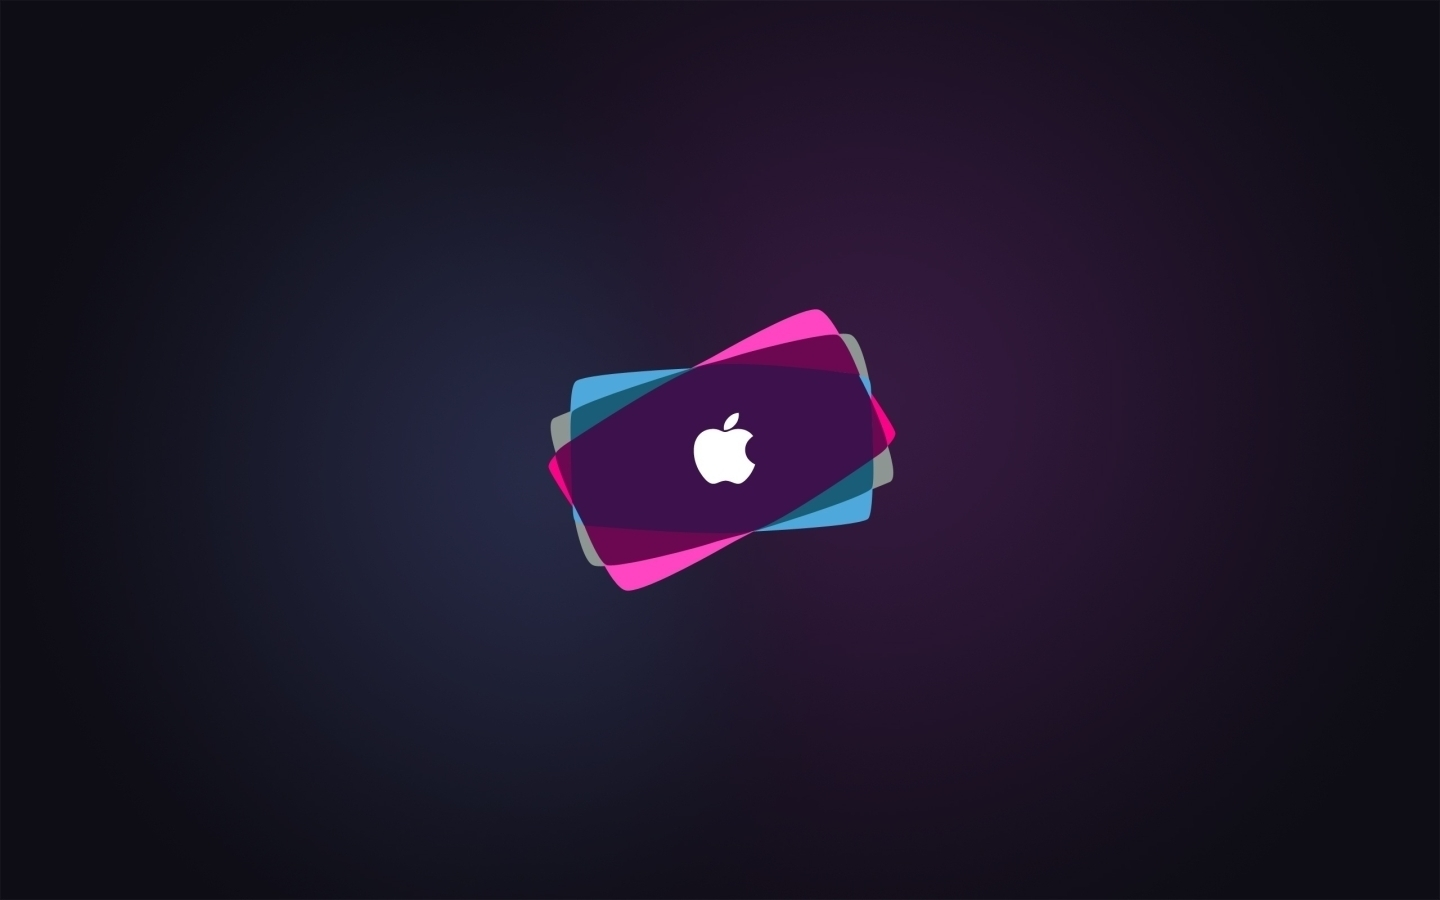 10 best wallpapers for macbook pro 13 full hd 1080p for pc - Full hd wallpapers for macbook pro ...